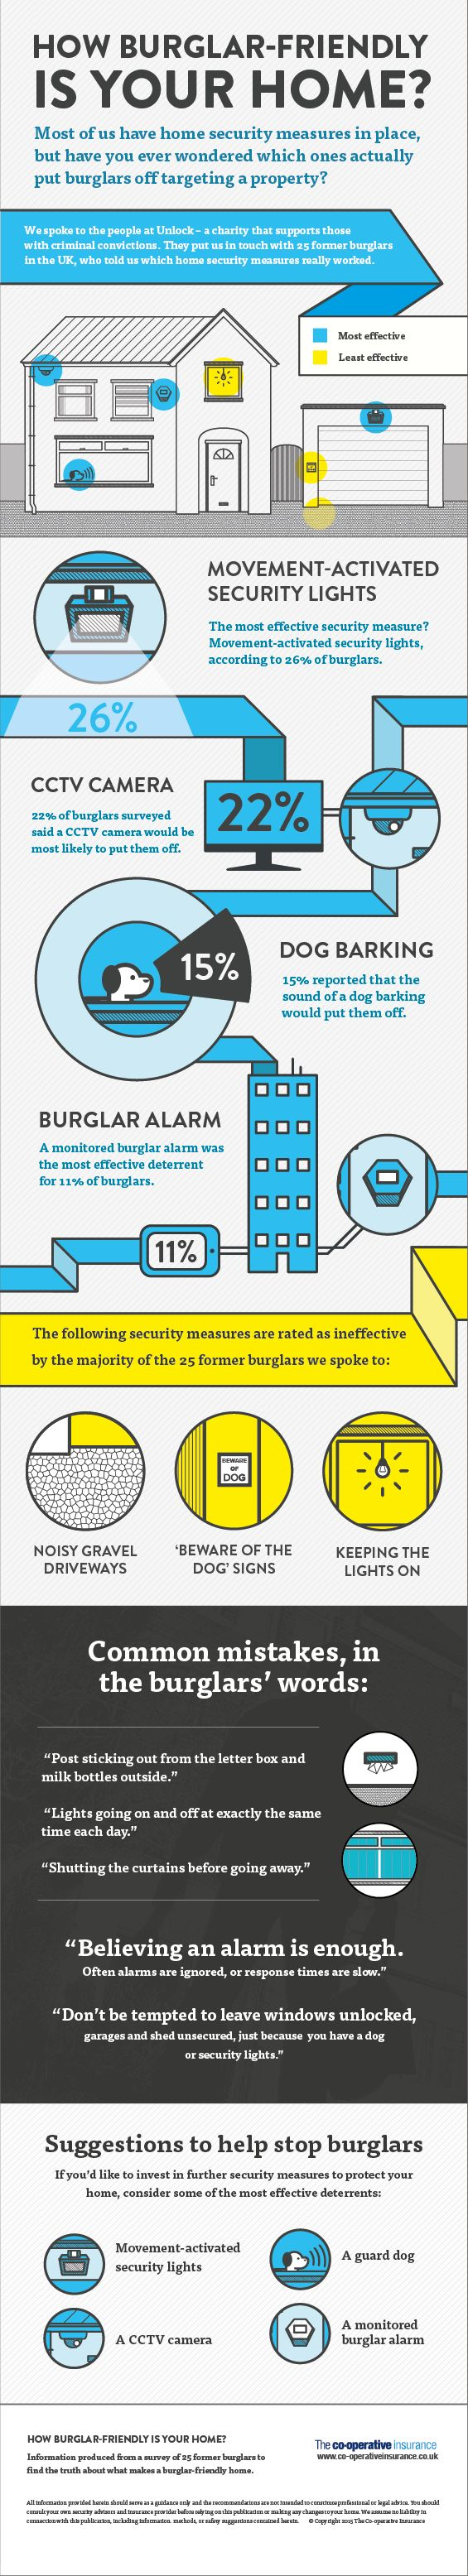 These Common Security Measures Actually Attract Burglars - Your Home's Likelihood of Burglary